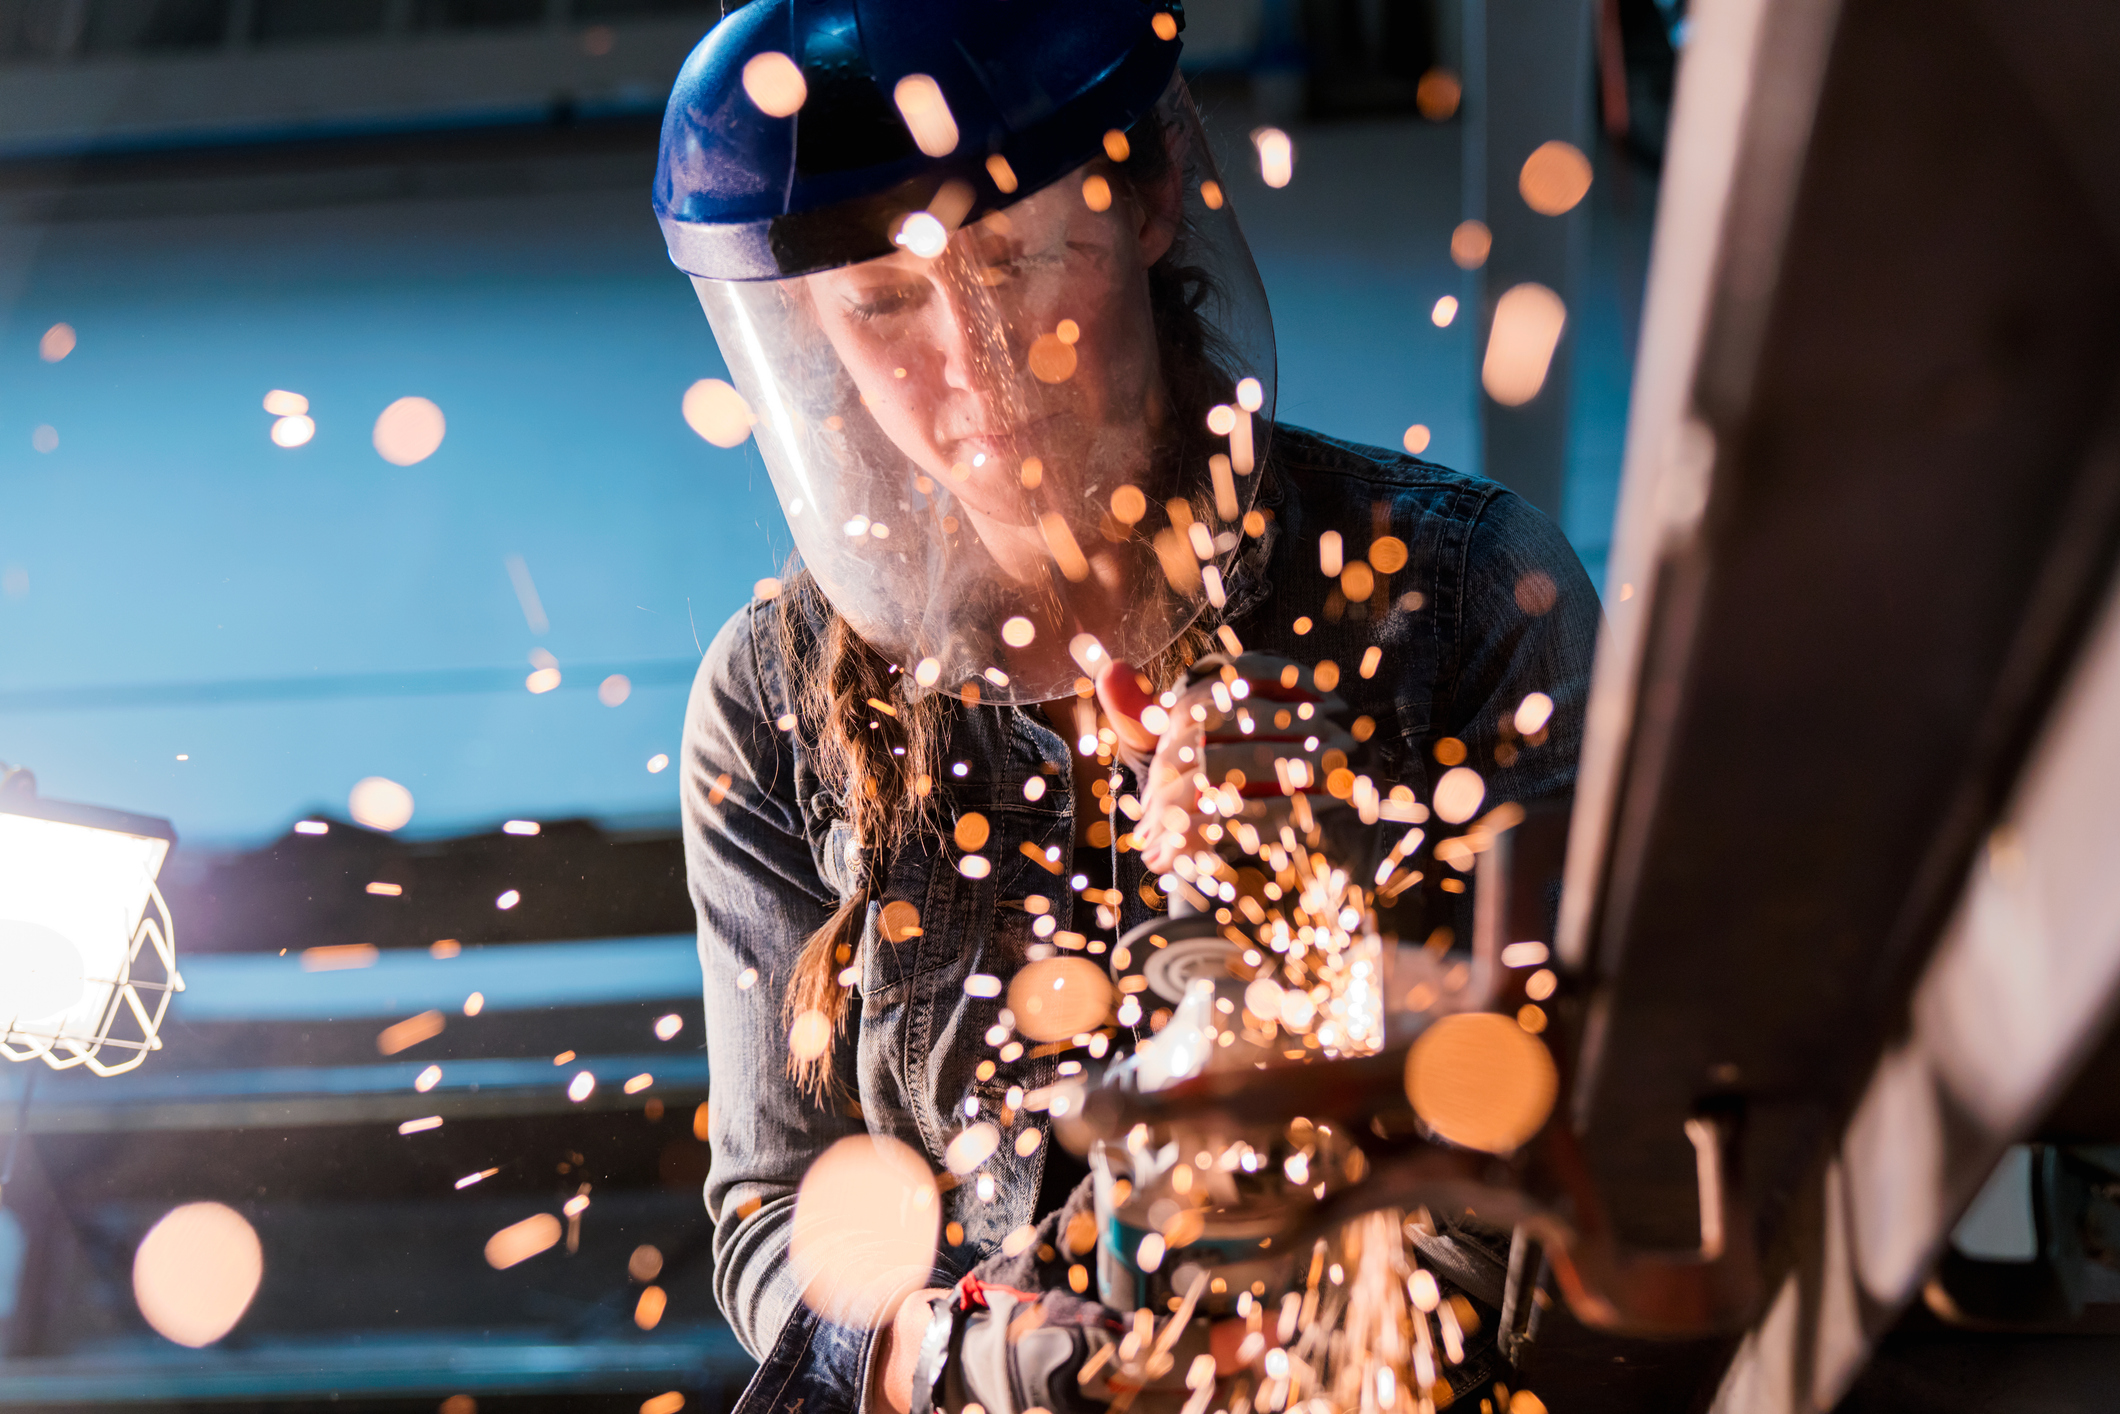 A female metalworker uses grinder tool, illuminating the foreground in flickering sparks